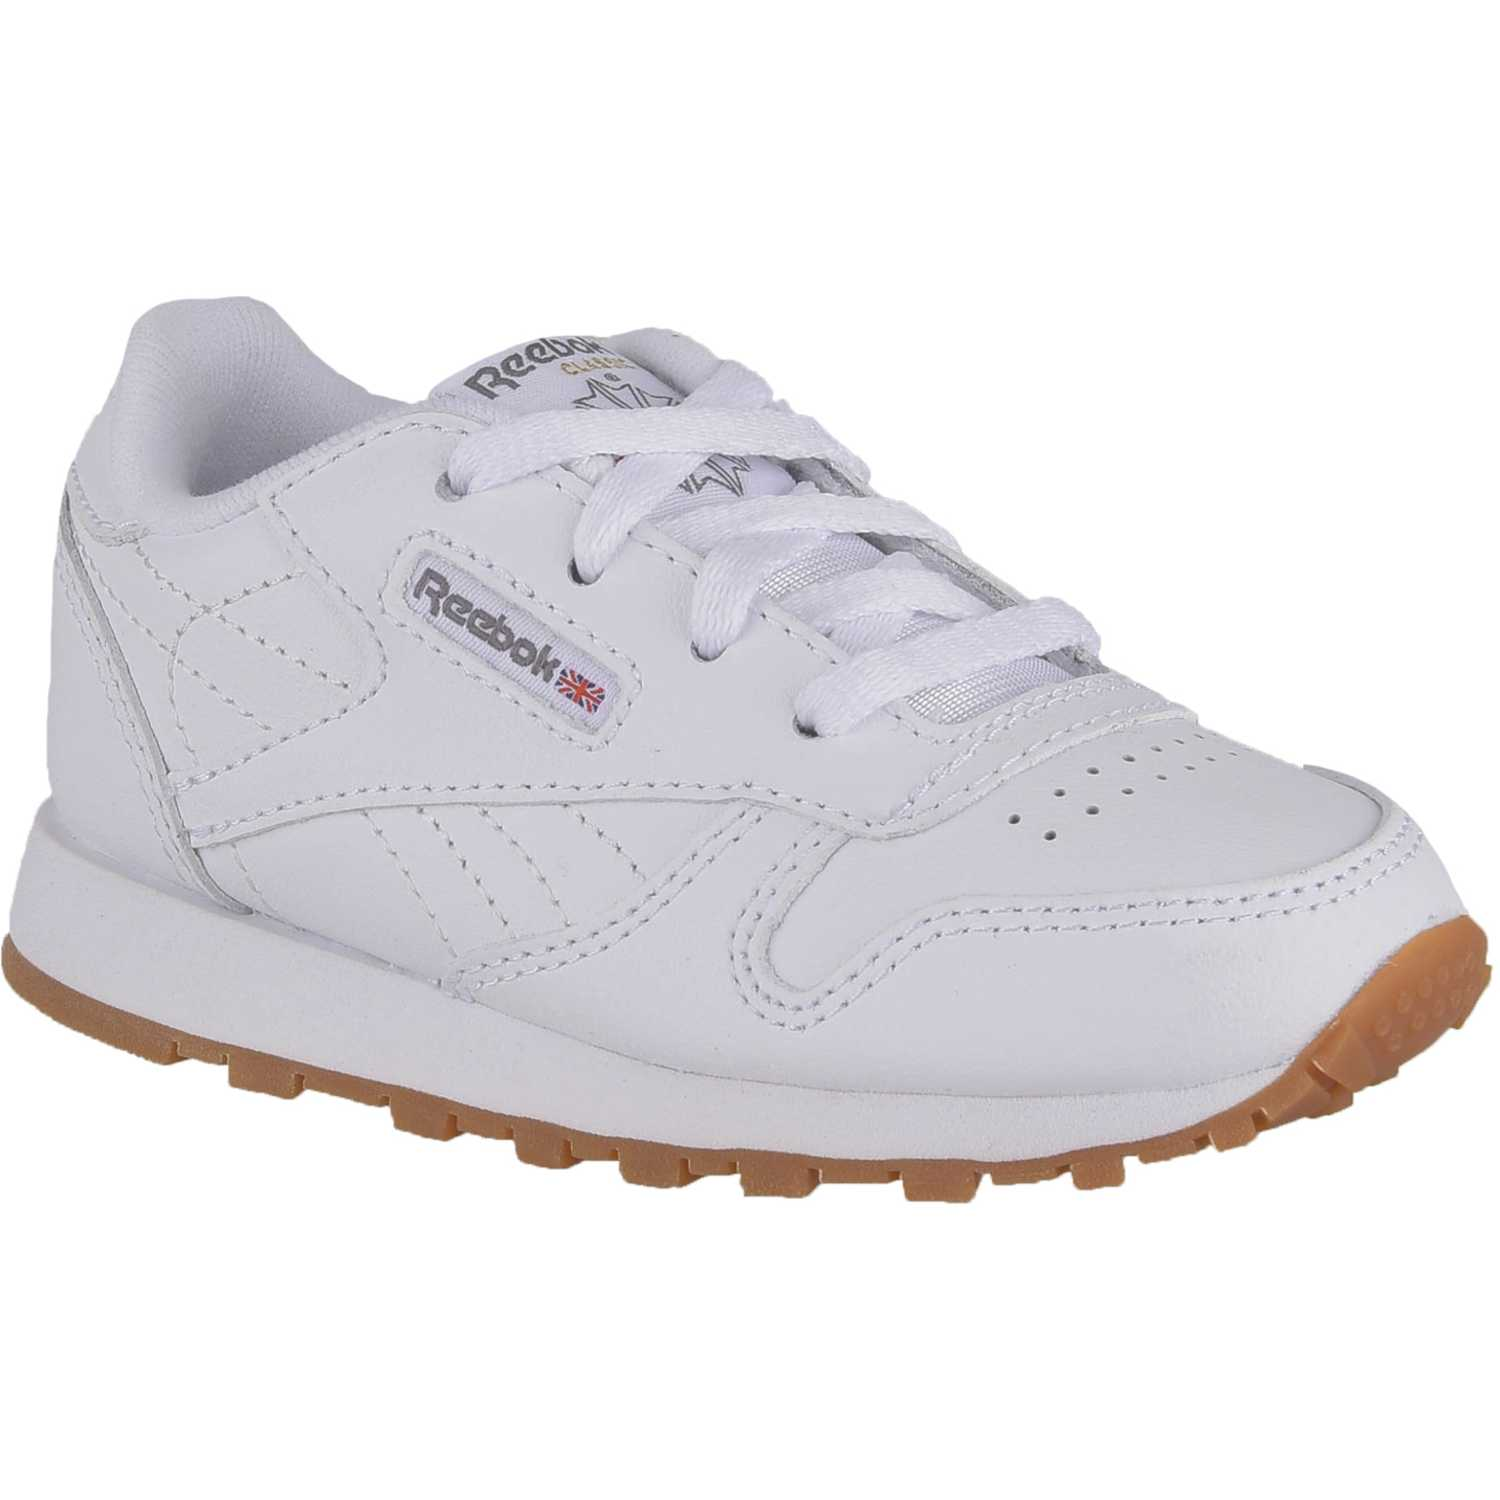 on sale 97aae 5649a Zapatilla de Niño Reebok Blanco classic leather